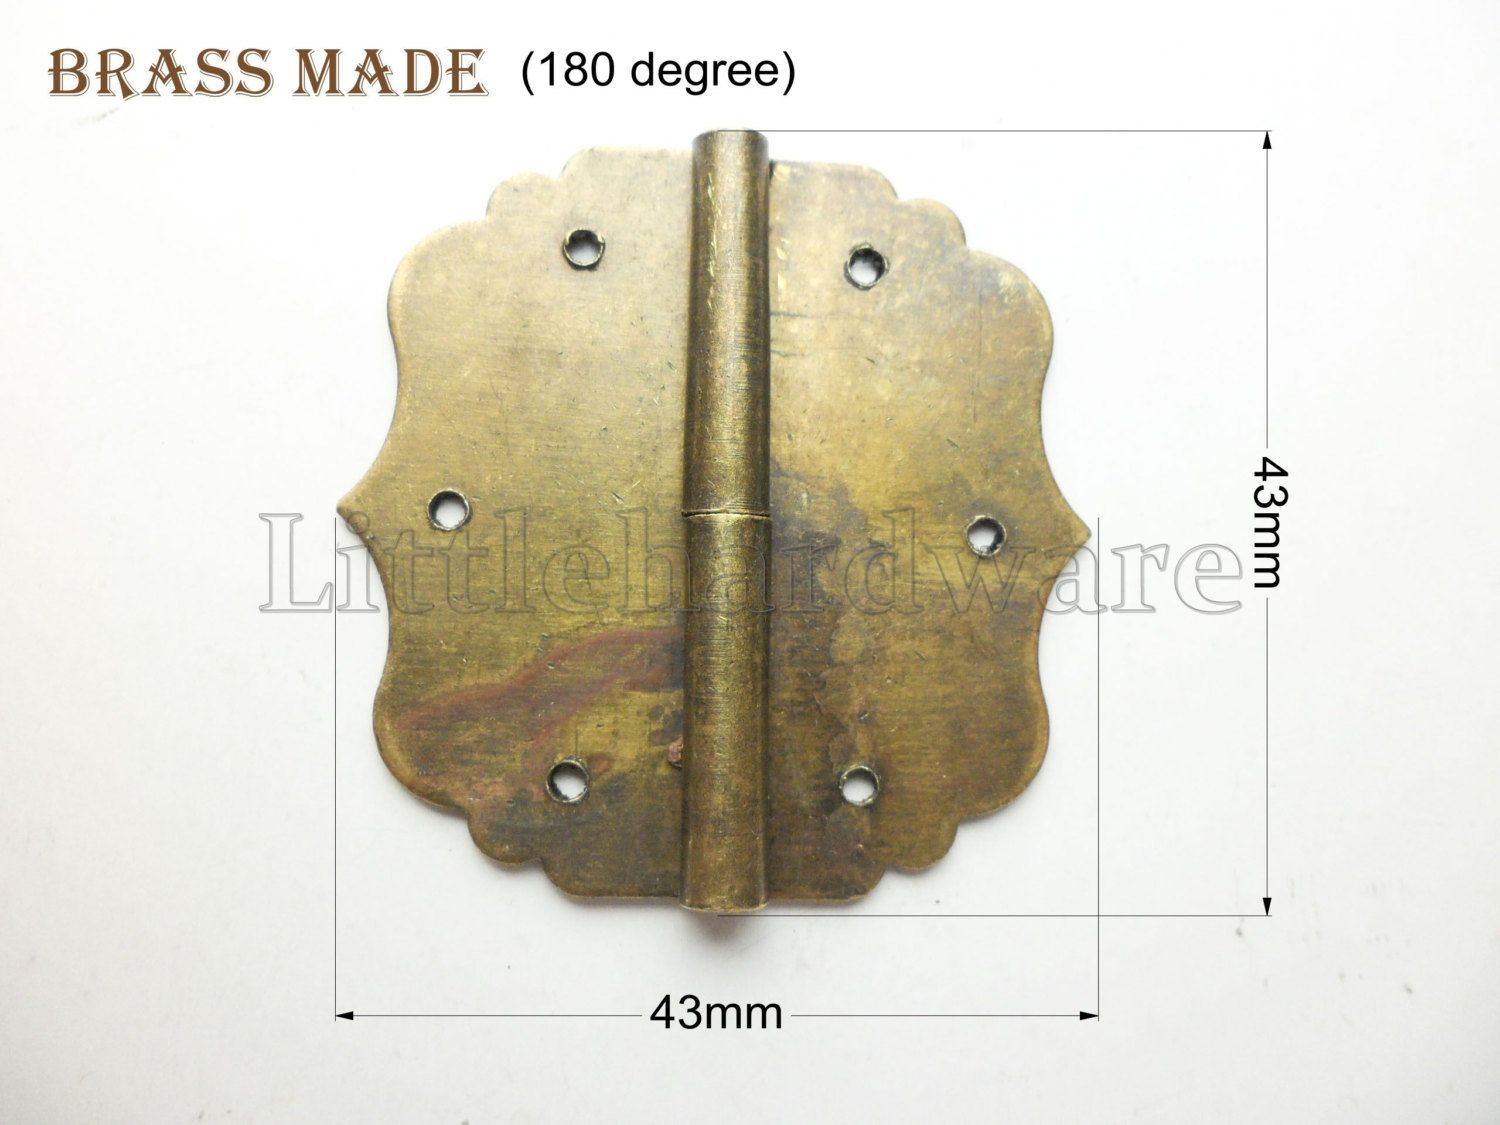 2 Pcs Brass Made 43mmx43mm Crown Metal Hinges Parliament Hinges Jewelry Box Hinges Decorative Hinges Vh0067 Decorative Hinges Antique Hinges Jewelry Box Hinges